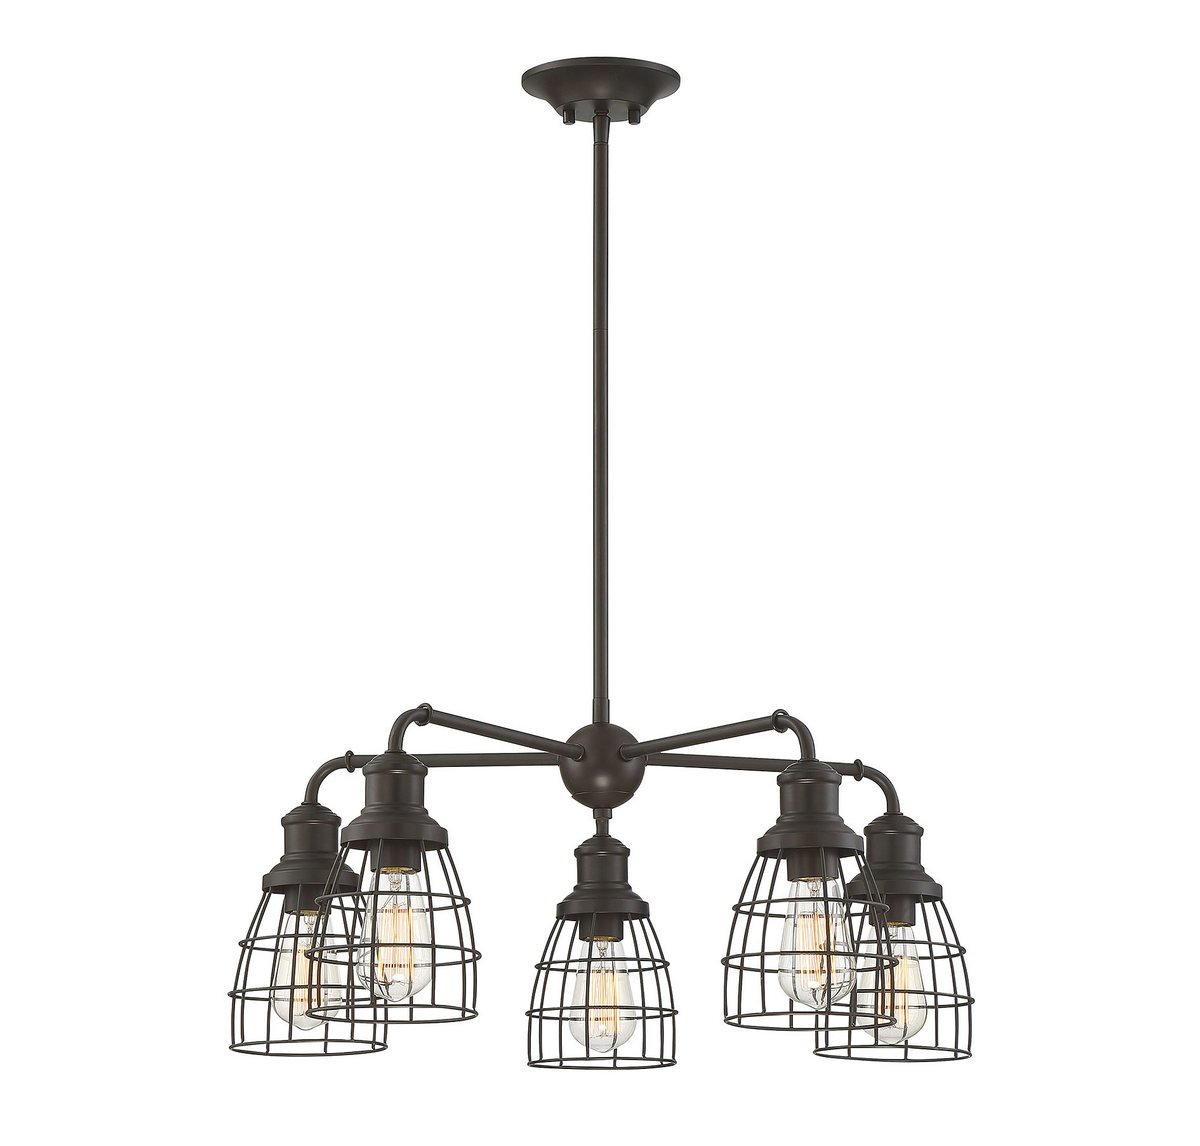 Trade Winds Lighting TW10053ORB 5 Light Vintage Industrial Hanging Cage Pendant Chandelier with Metal Wire Shades, 60 Watts, in Oil Rubbed Bronze by Trade Winds Lighting